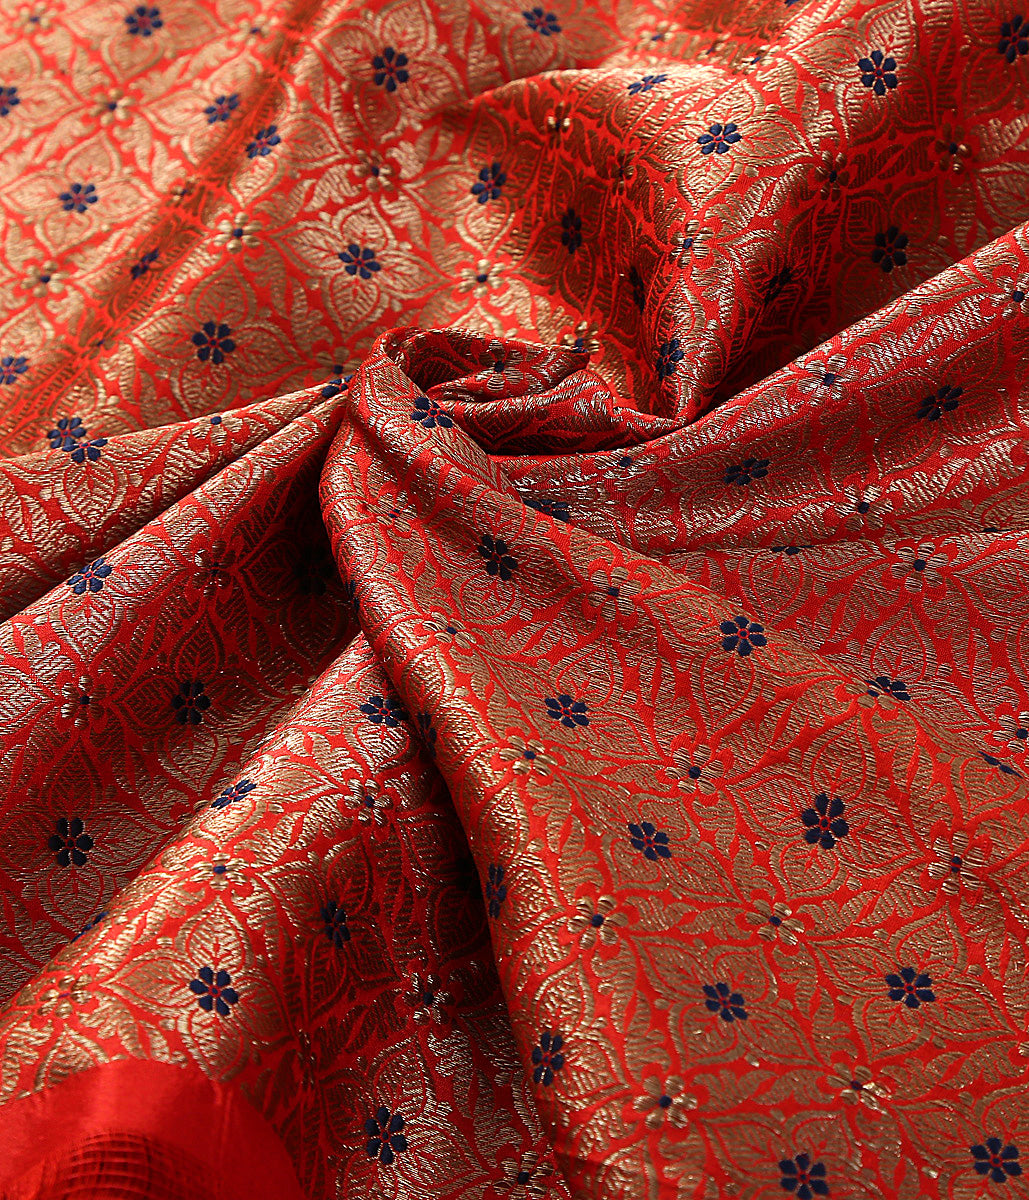 Handwoven banarasi brocade fabric in red with meenakari